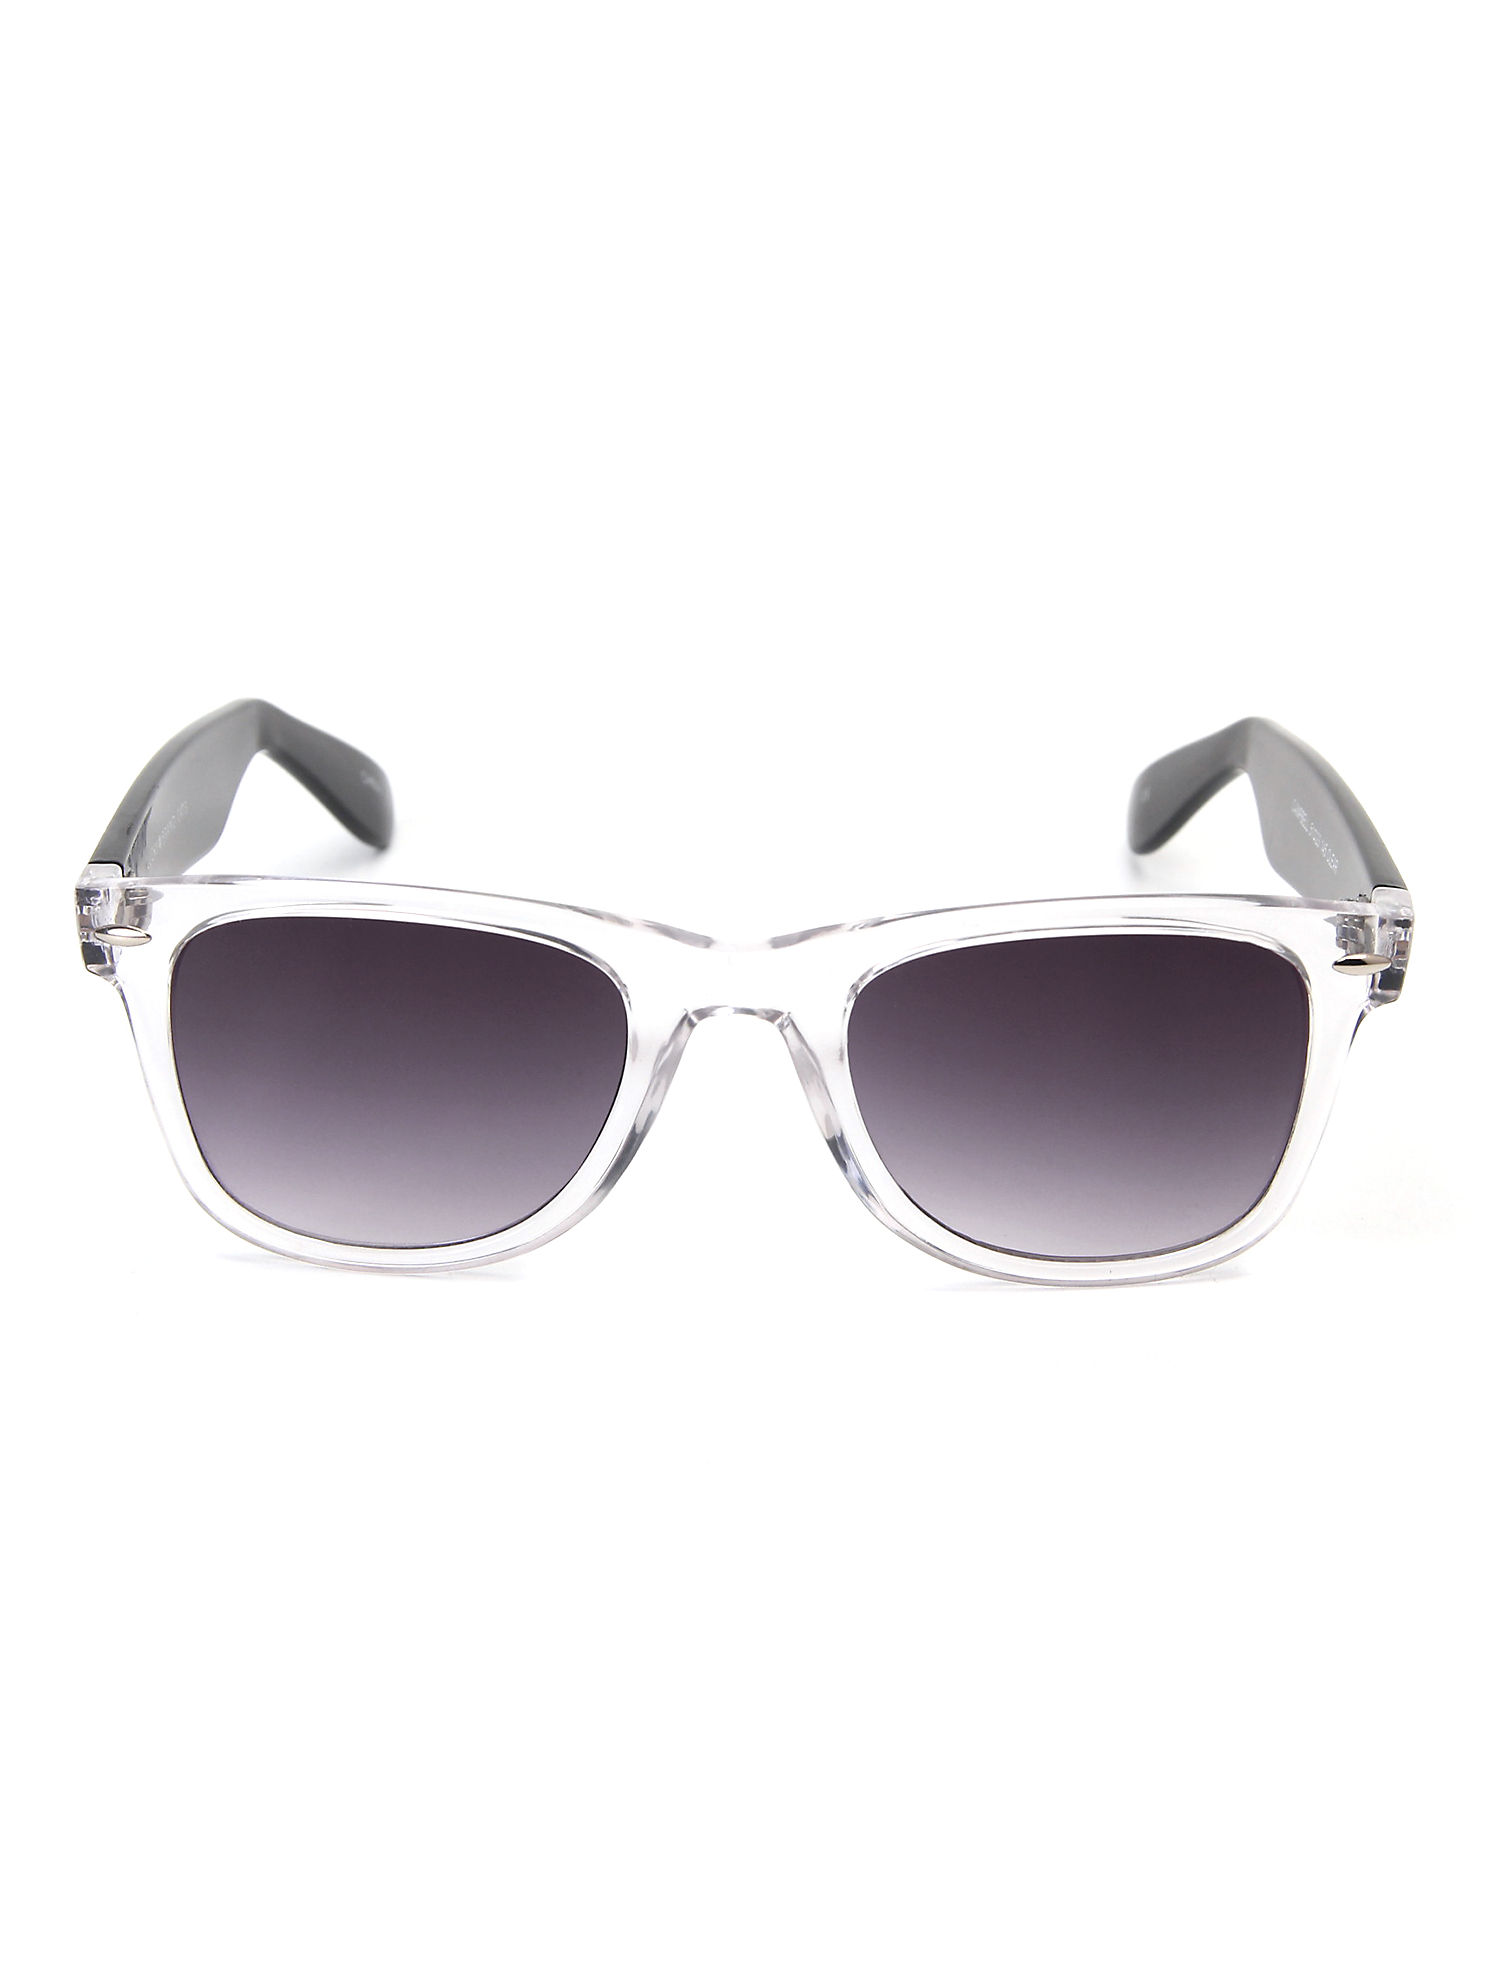 Campbell Sunglasses | Tuggl